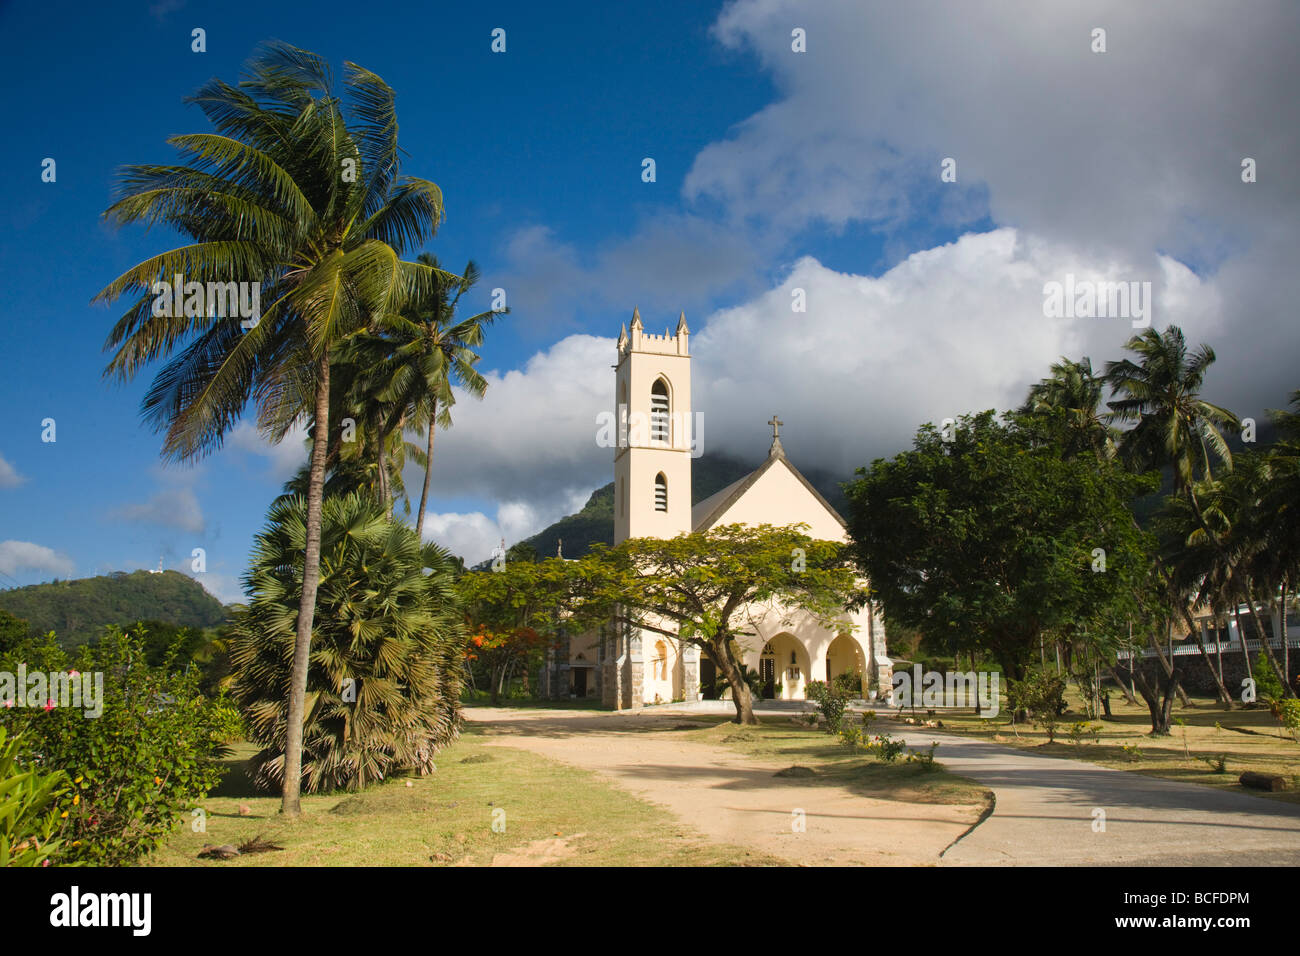 Seychelles, Mahe Island, Bel Ombre, town church - Stock Image